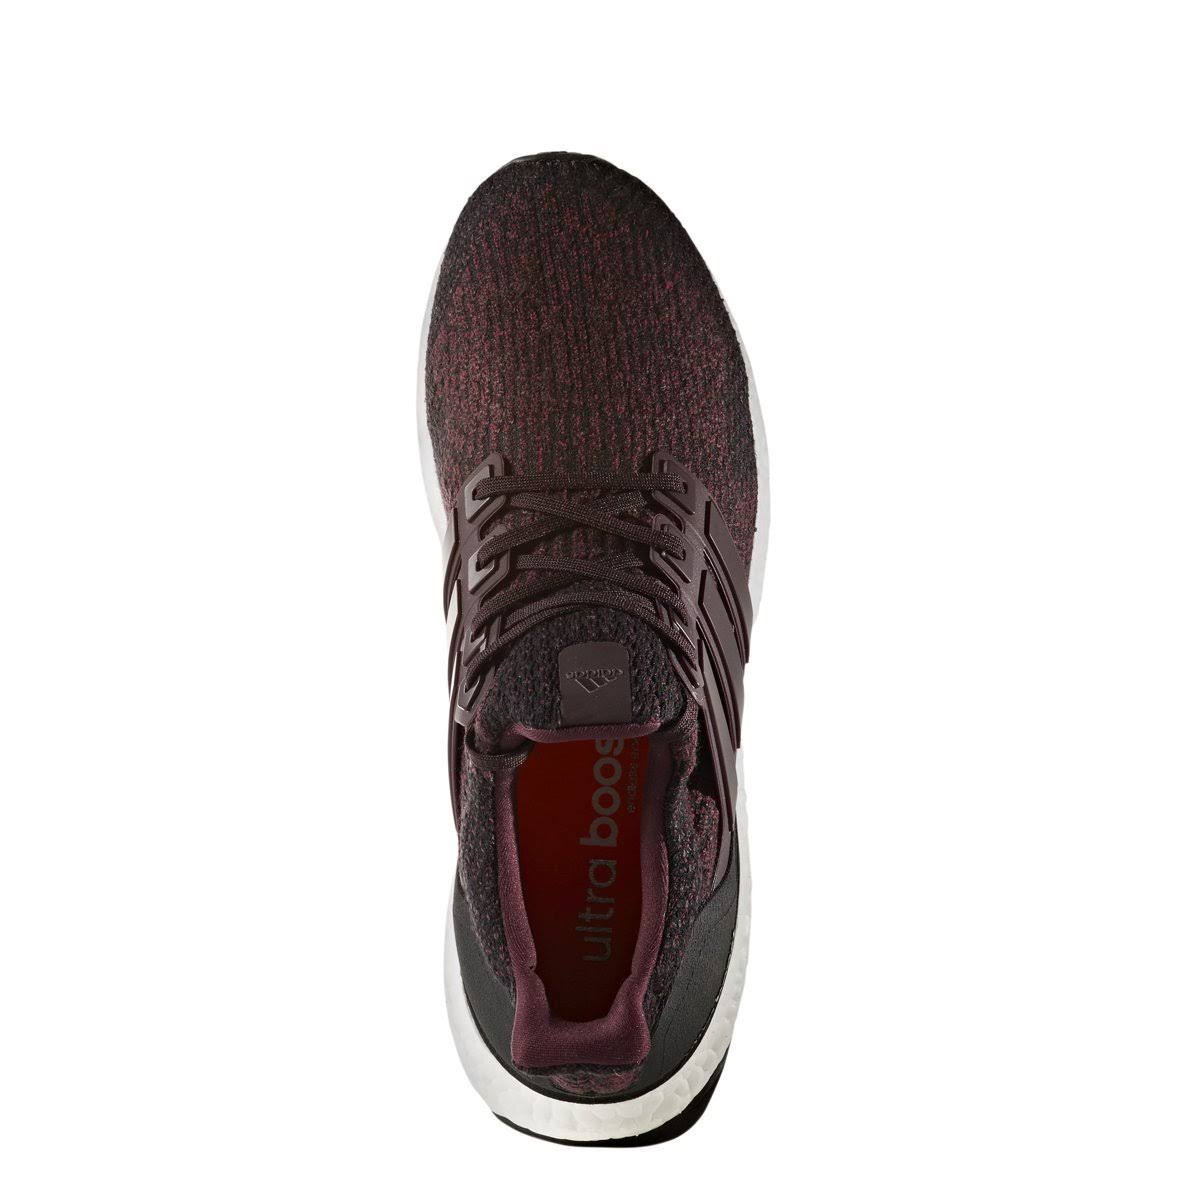 Boost Darkburgundy Ultra Burgundy 0 11 Negro Coreblack Medium Men D Oscuro s80732 Adidas 05dfRqwq